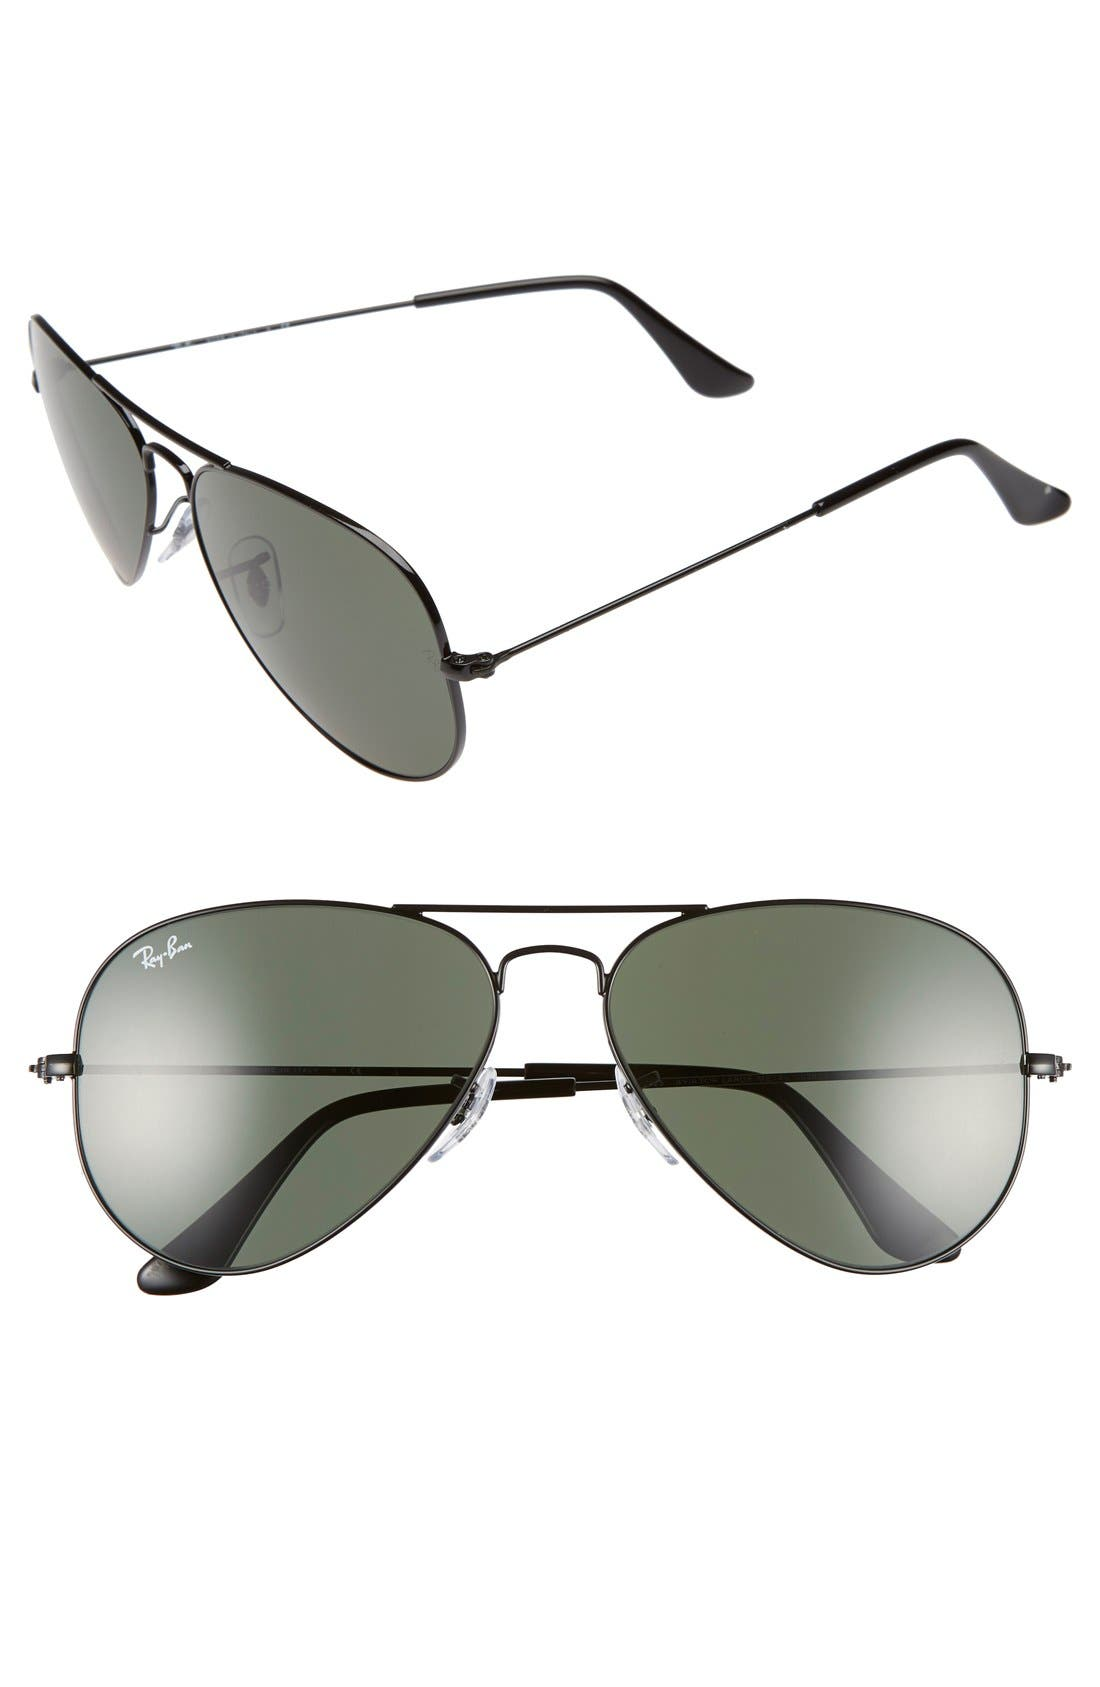 Main Image - Ray-Ban Standard Original 58mm Aviator Sunglasses